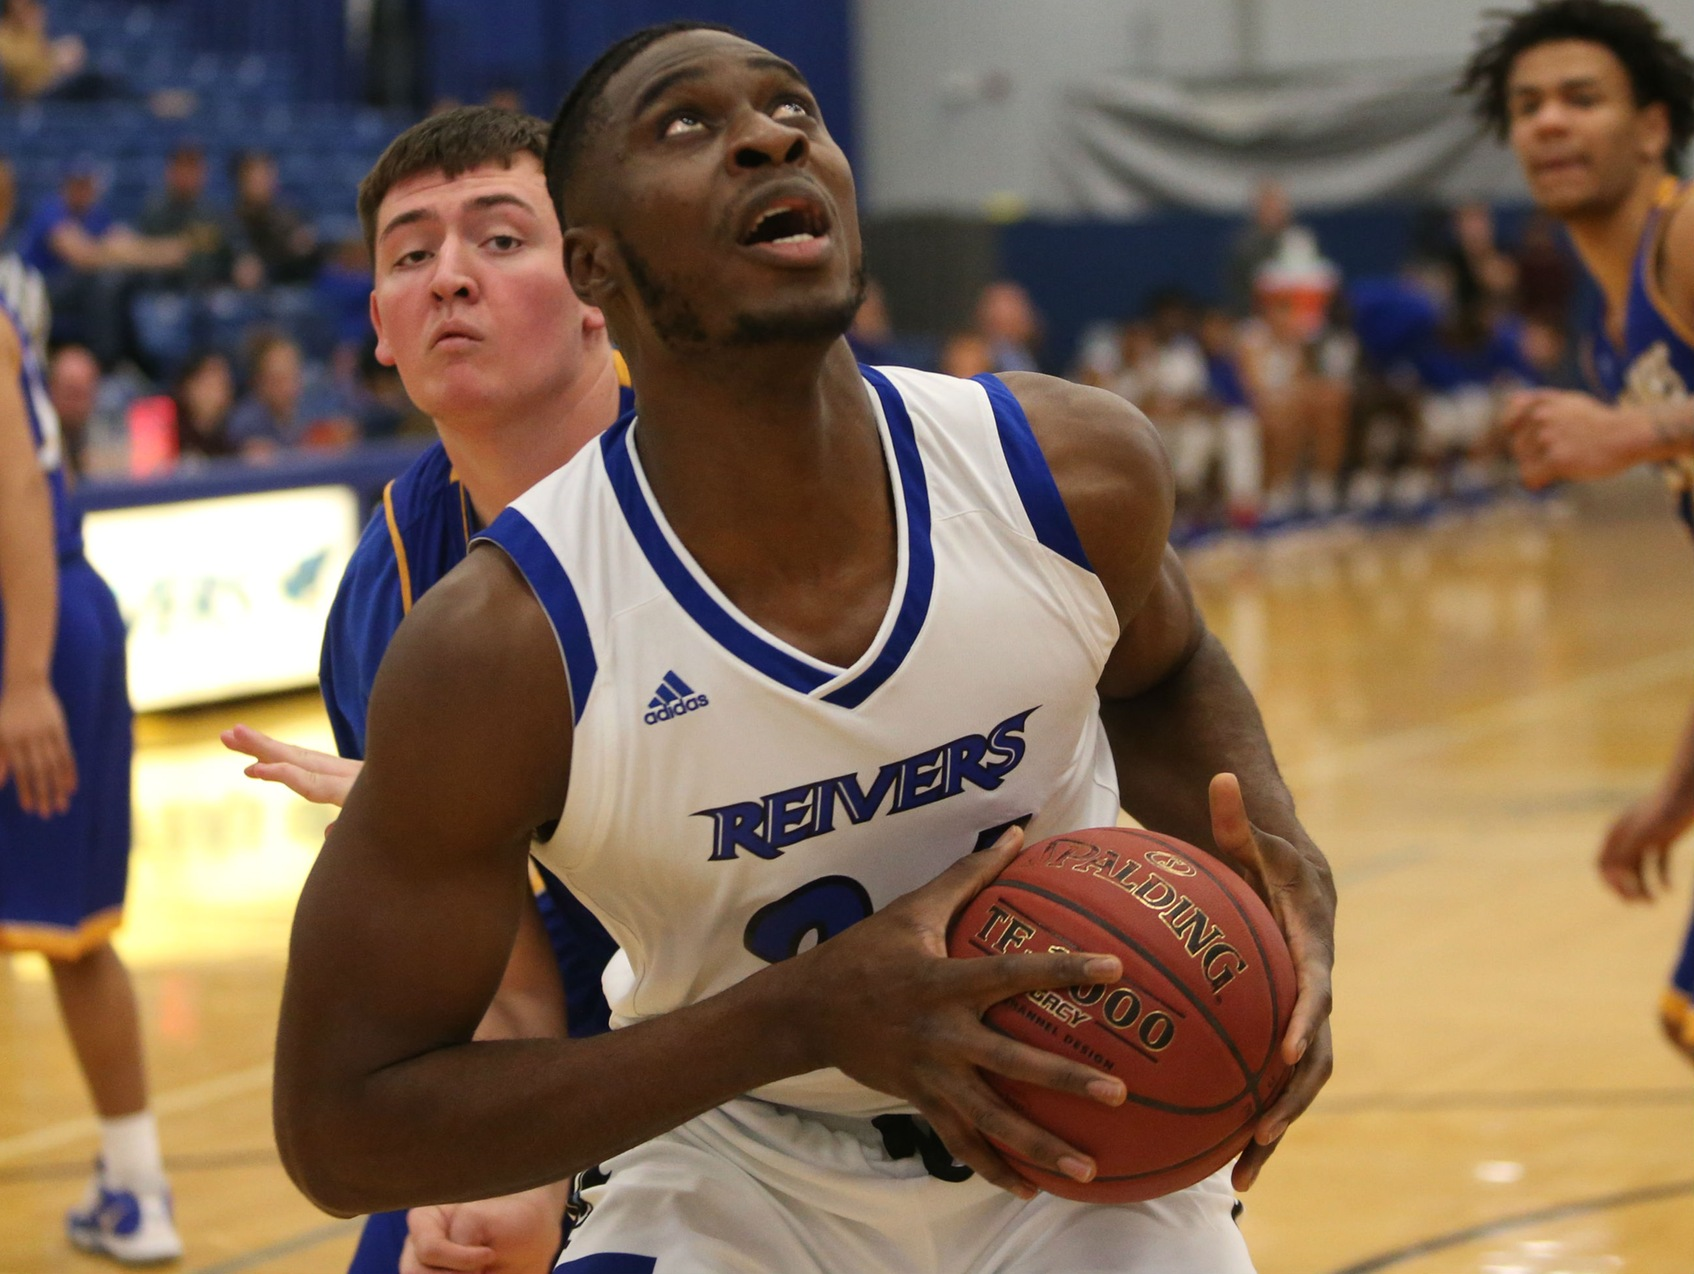 Emmanuel Ugboh was one of 13 Reivers on the men's basketball team to be honored at half-time for their Academic All-Region performances this year.